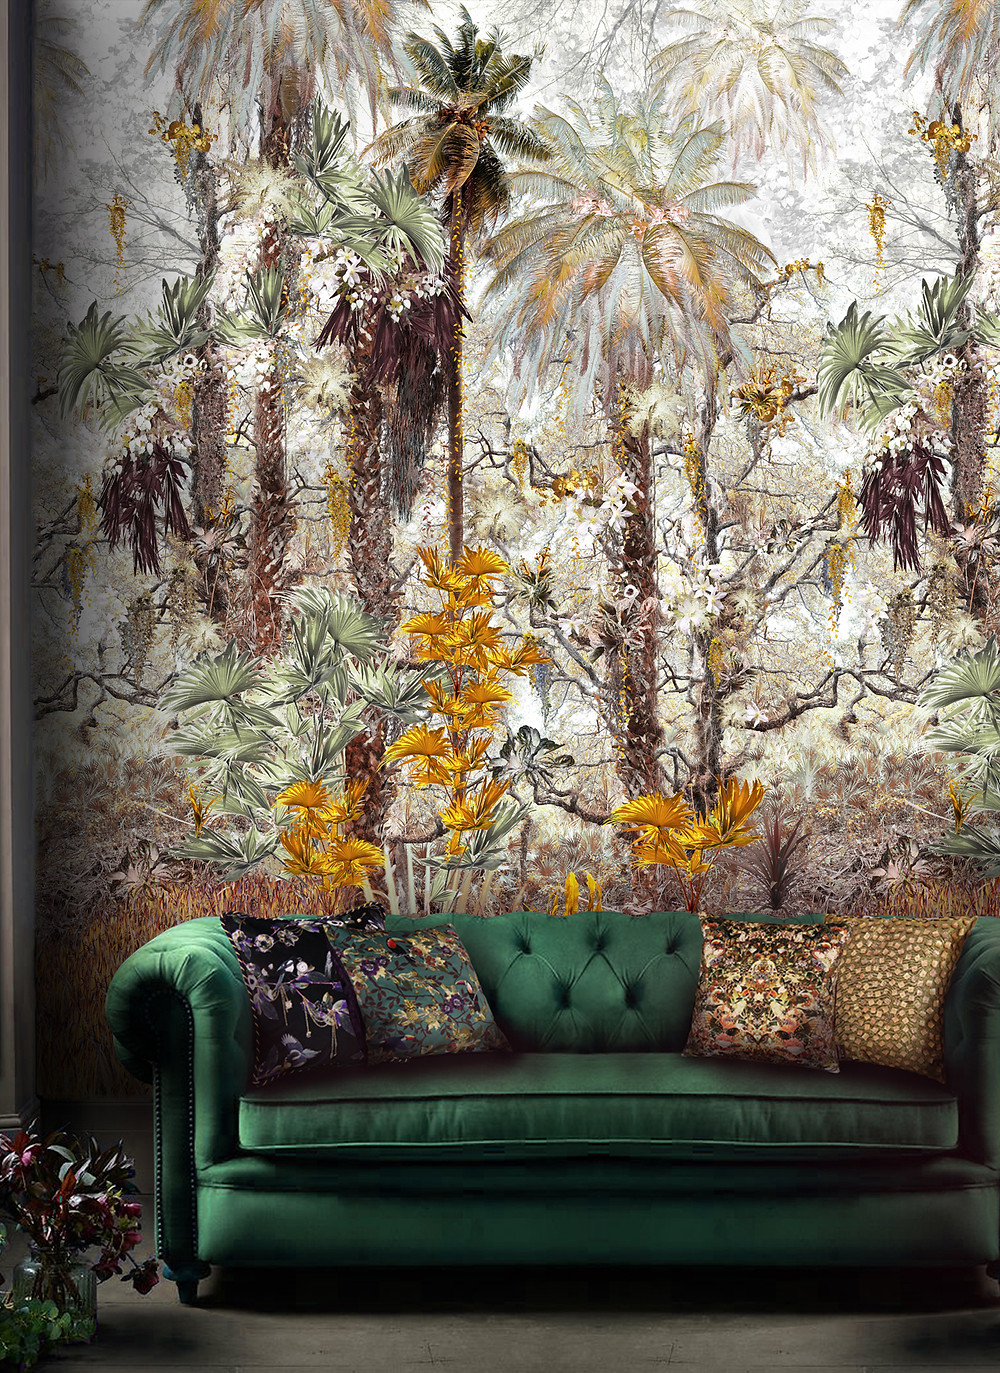 Jungle Mural Wallpaper by Good and Craft in living room with rainforest print and green velvet sofa